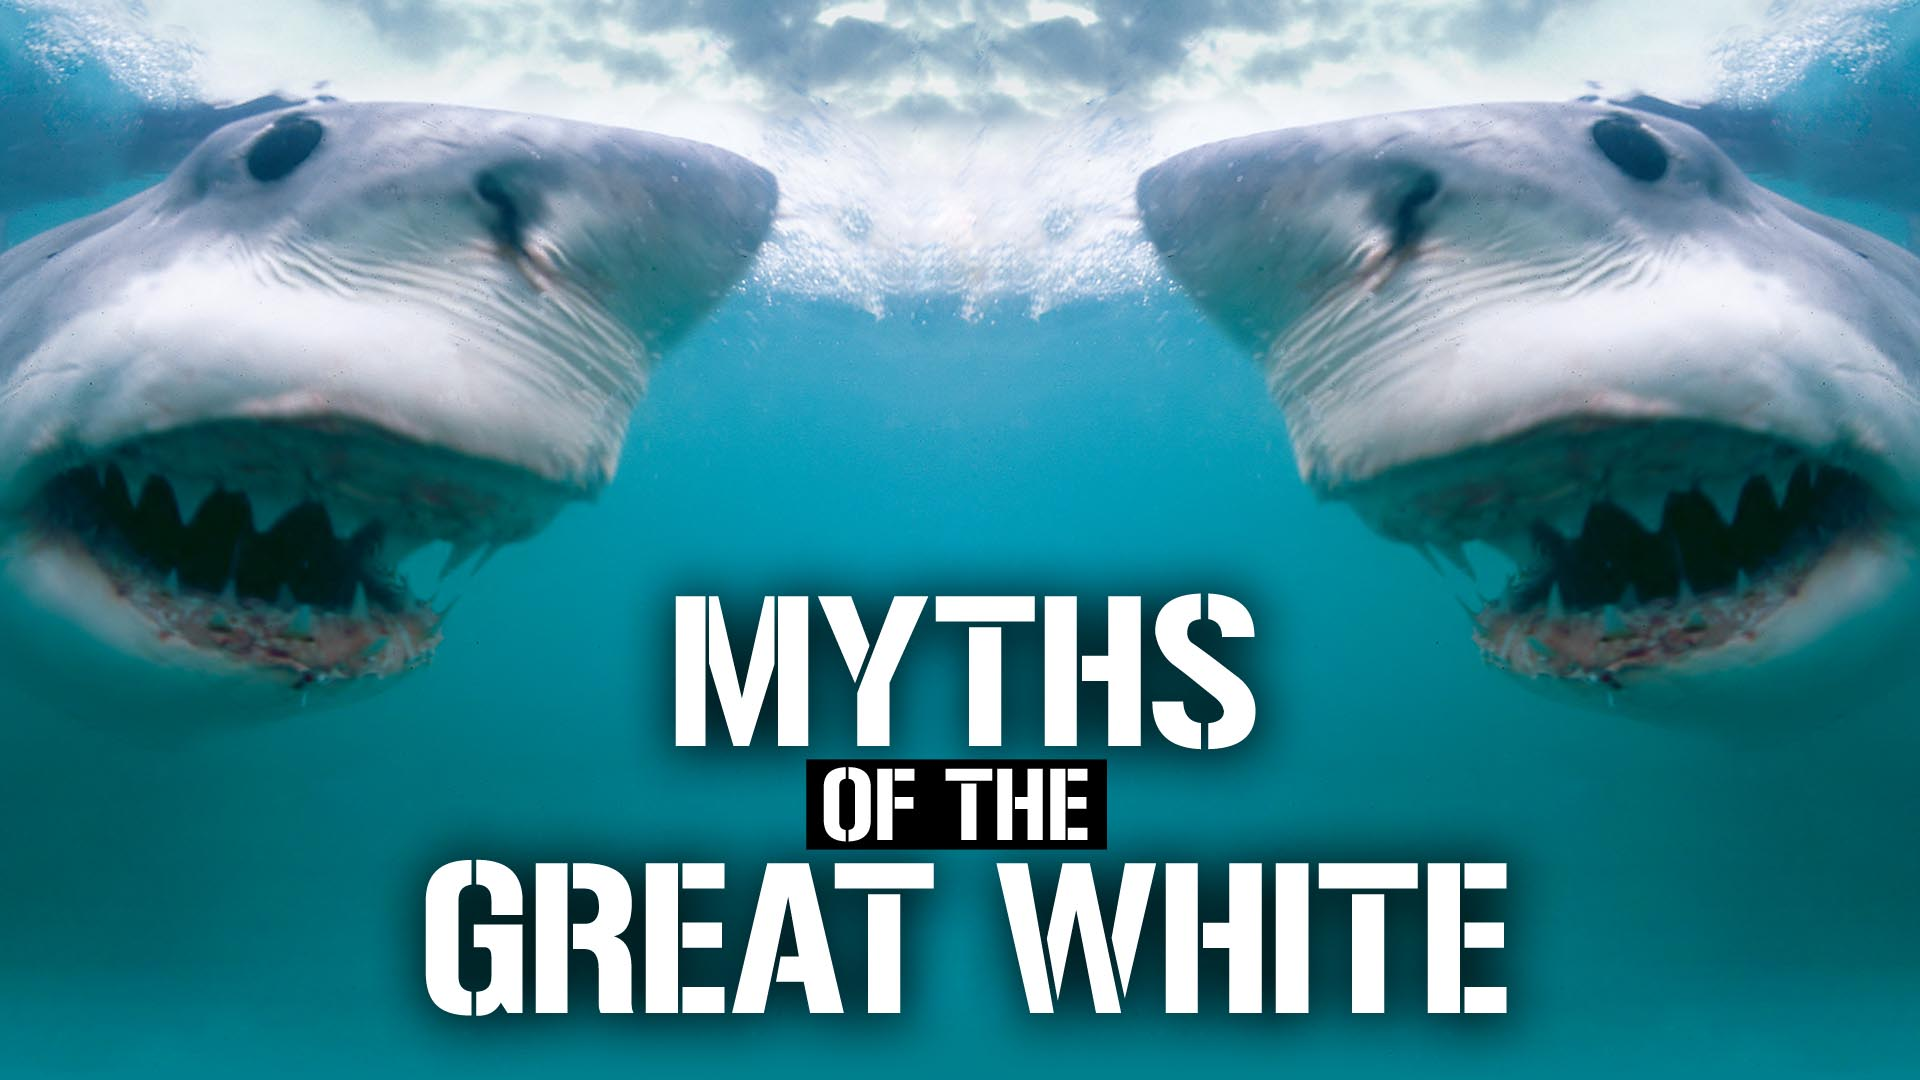 Myths of the Great White -